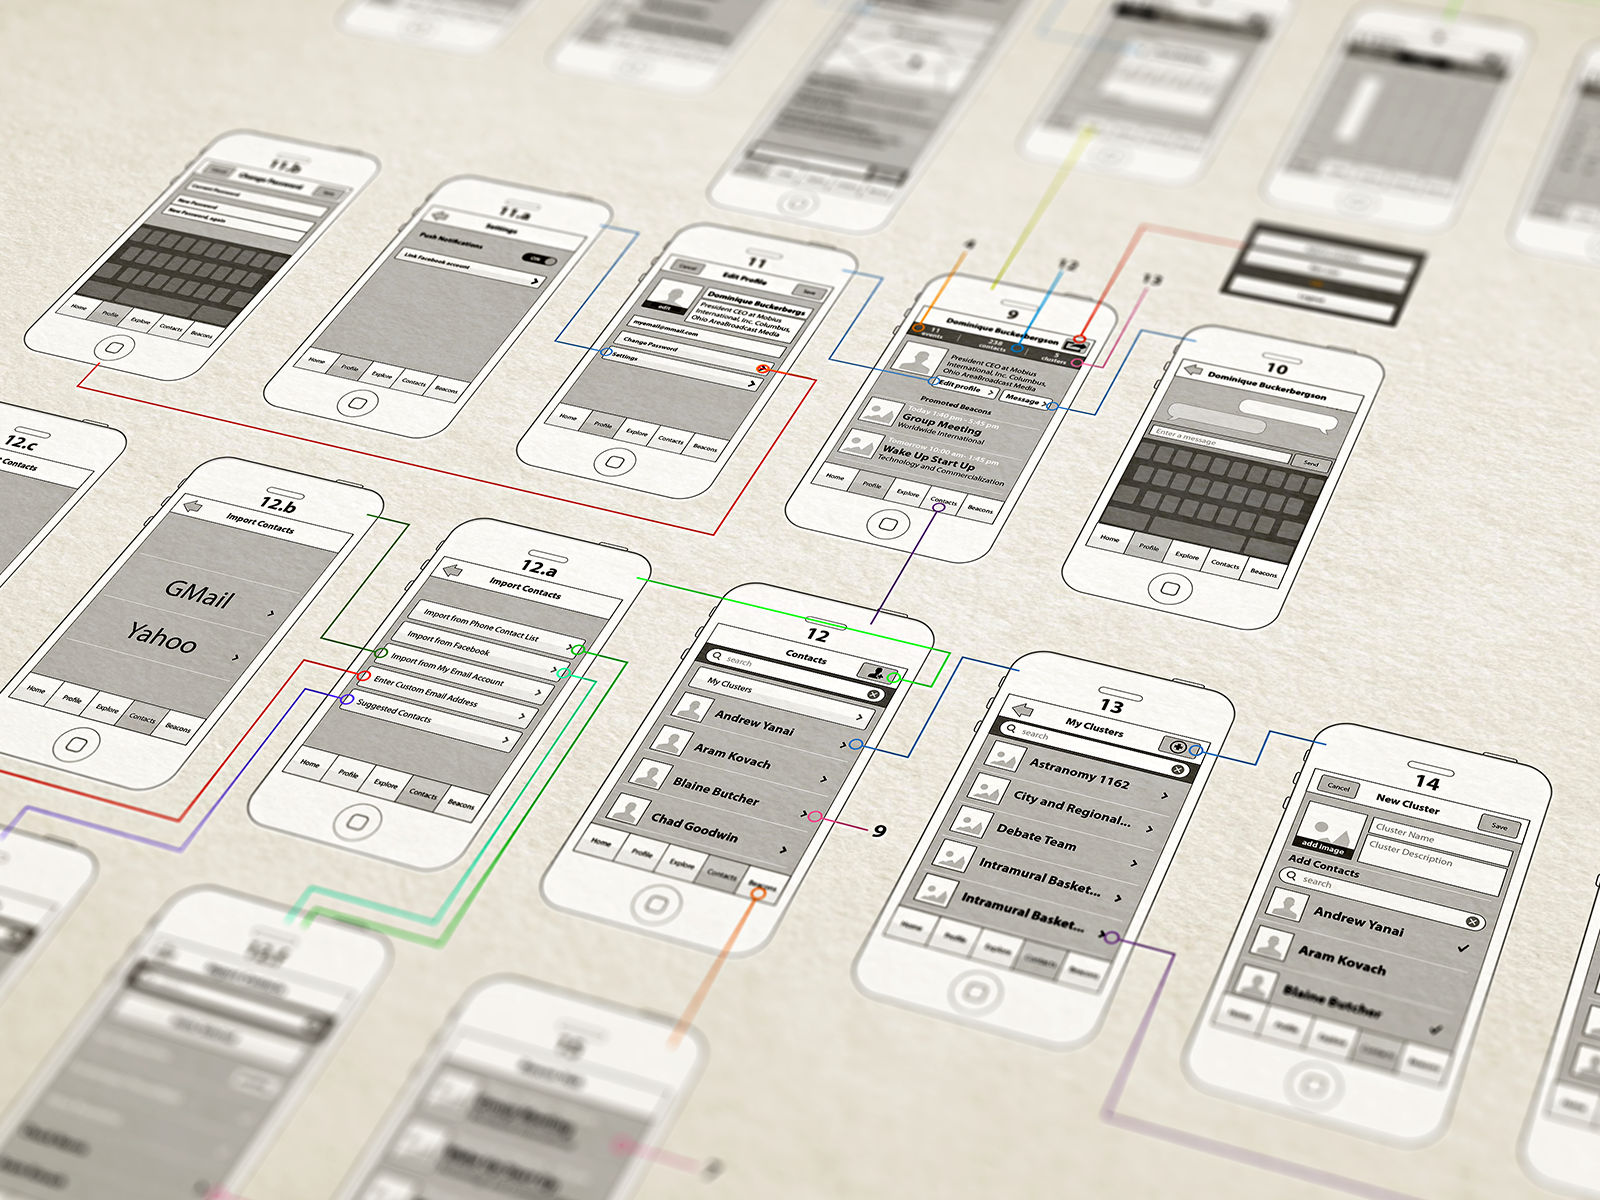 5 great free to use wireframe tools